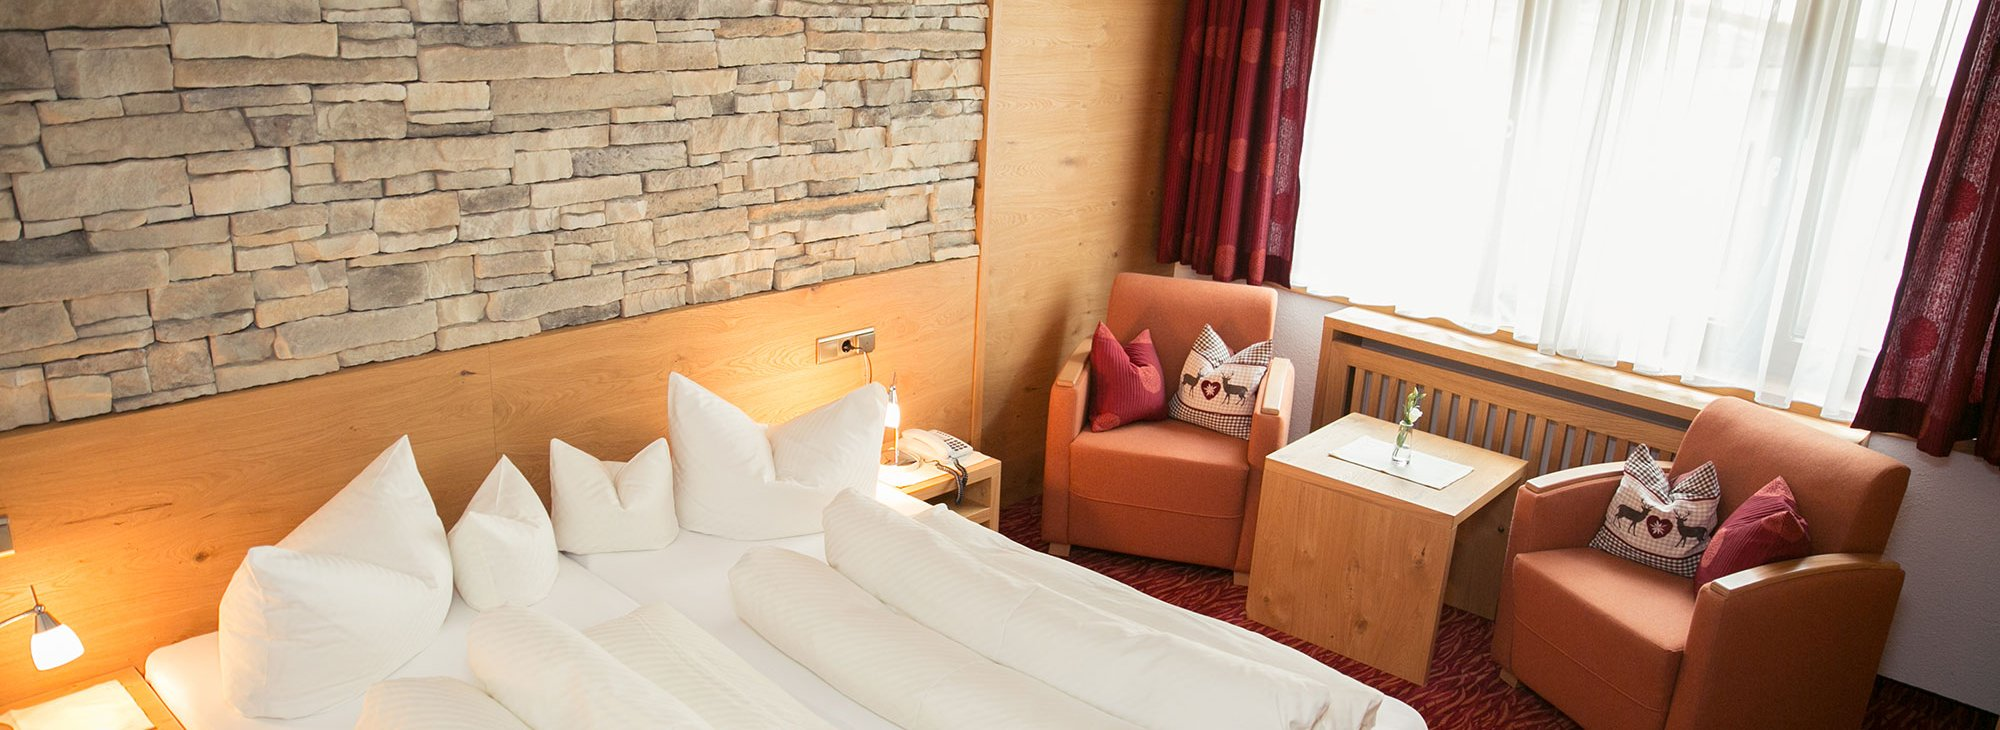 Your home-away-from-home in Sölden